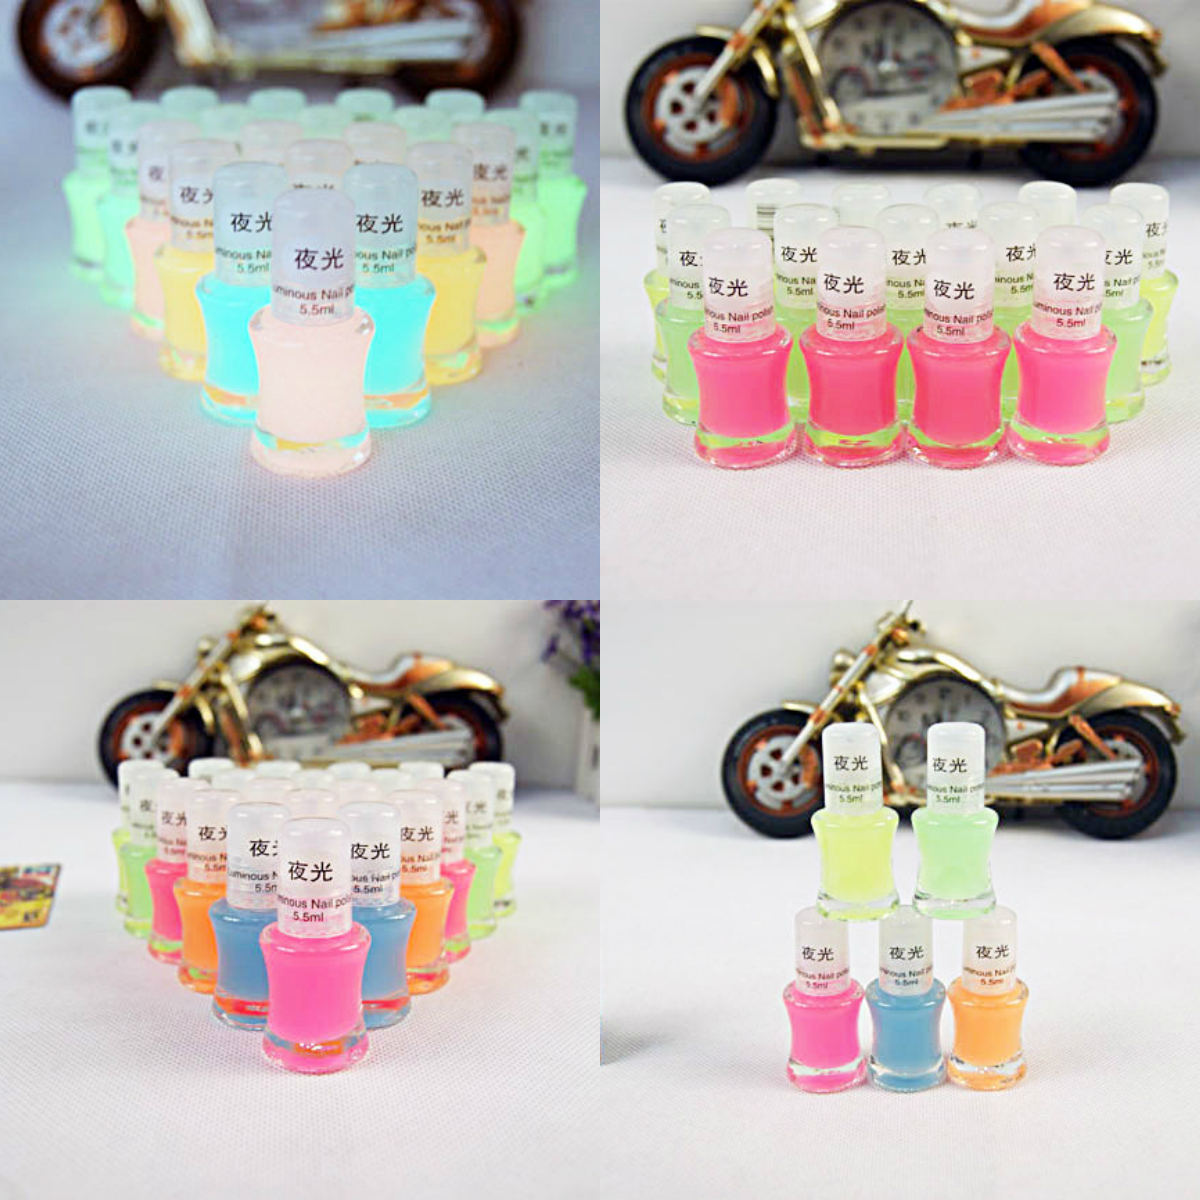 Sexy 5 Candy Colors Luminous Nail Gel Fluorescent Bright Nail Art Polish Enamel Neon Club Shiny Women Girls(China (Mainland))